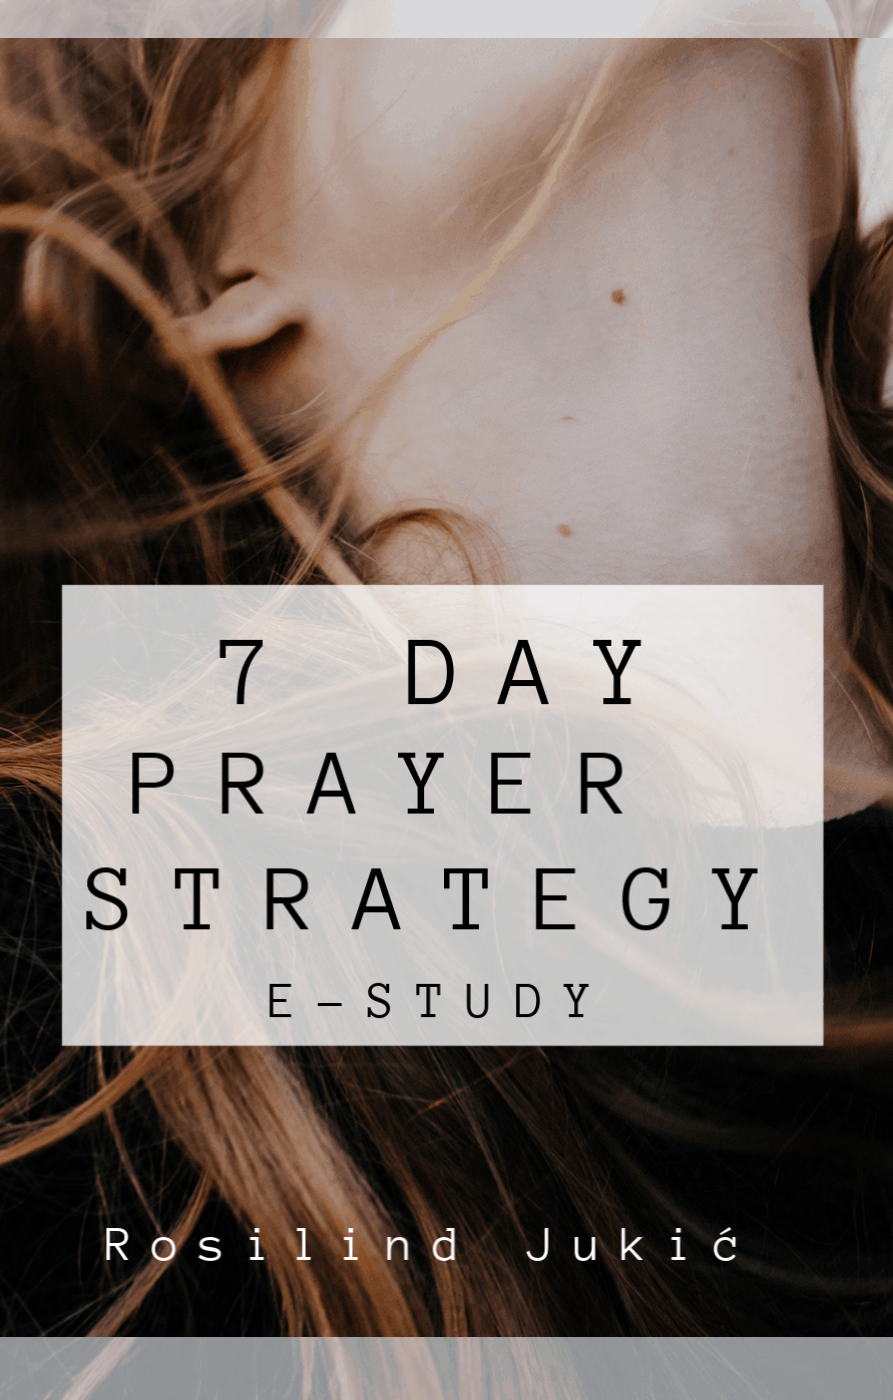 Join me for the 7 Day Payer Strategy e-study and learn to pray effective, fervent prayers that avail much! #alittlerandr #prayer #prayerstrategy #warroom